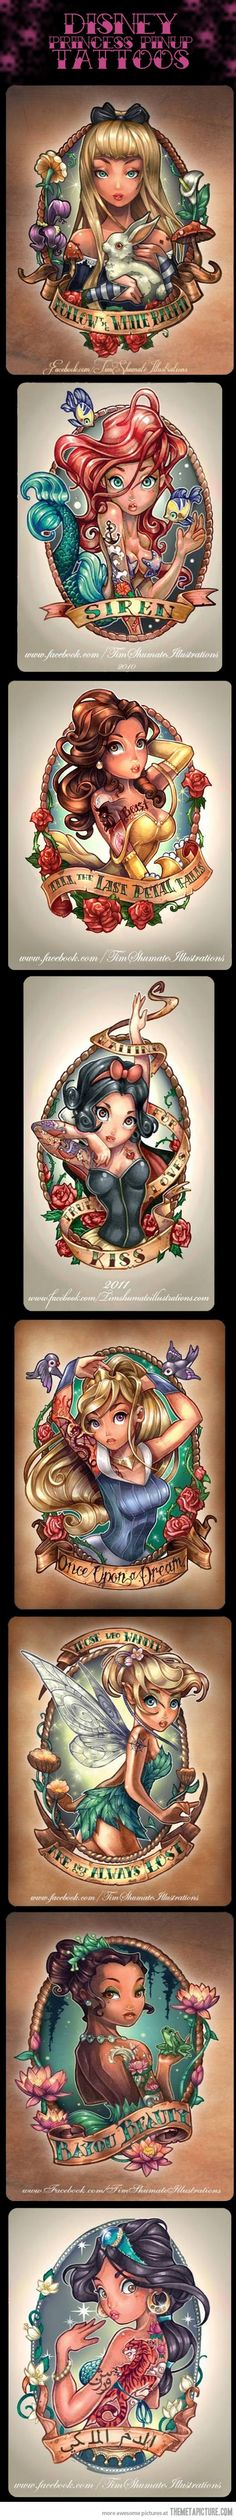 8 Very Cool Disney Princess Pinup Tattoos.